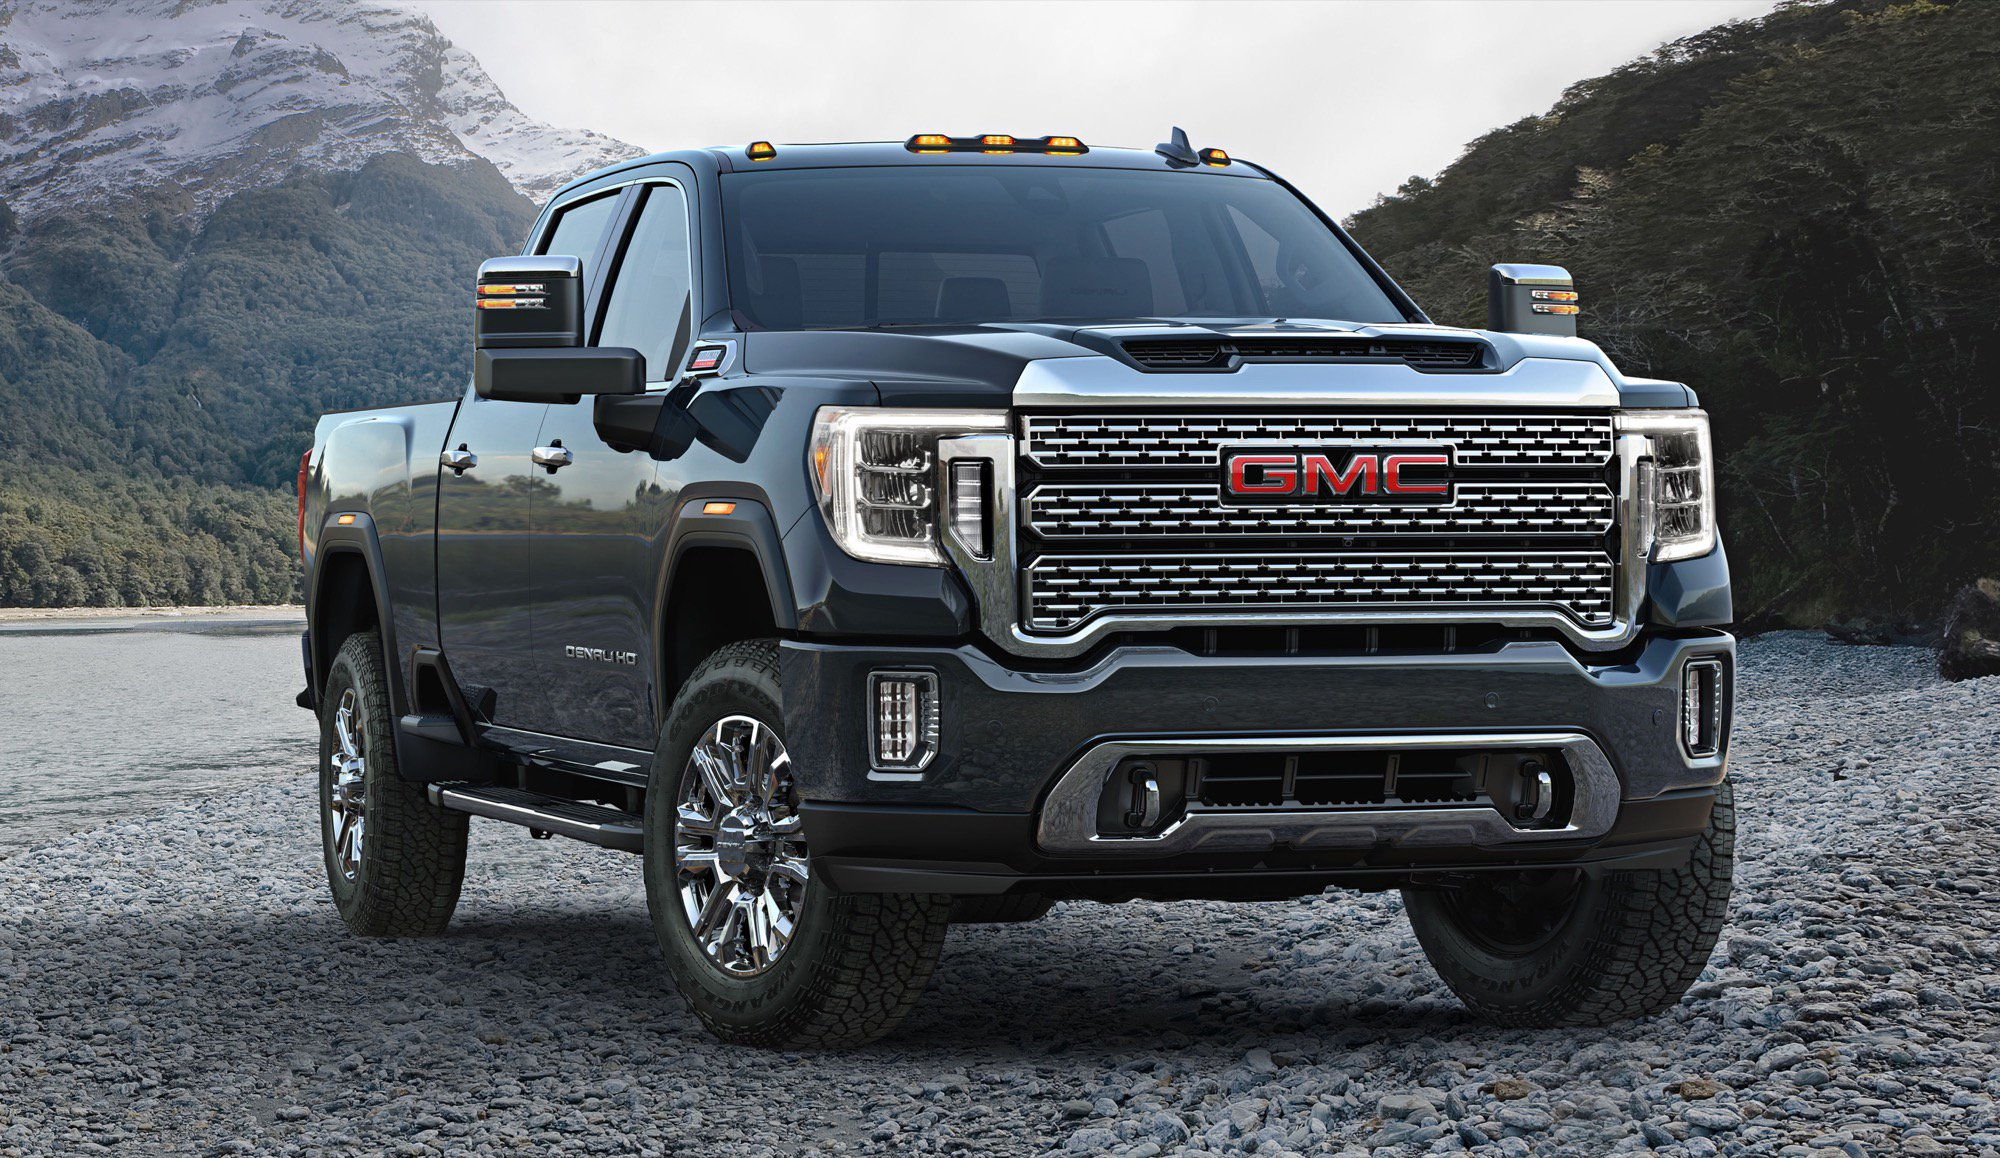 68 The Best 2020 GMC Denali 3500Hd Price Design and Review